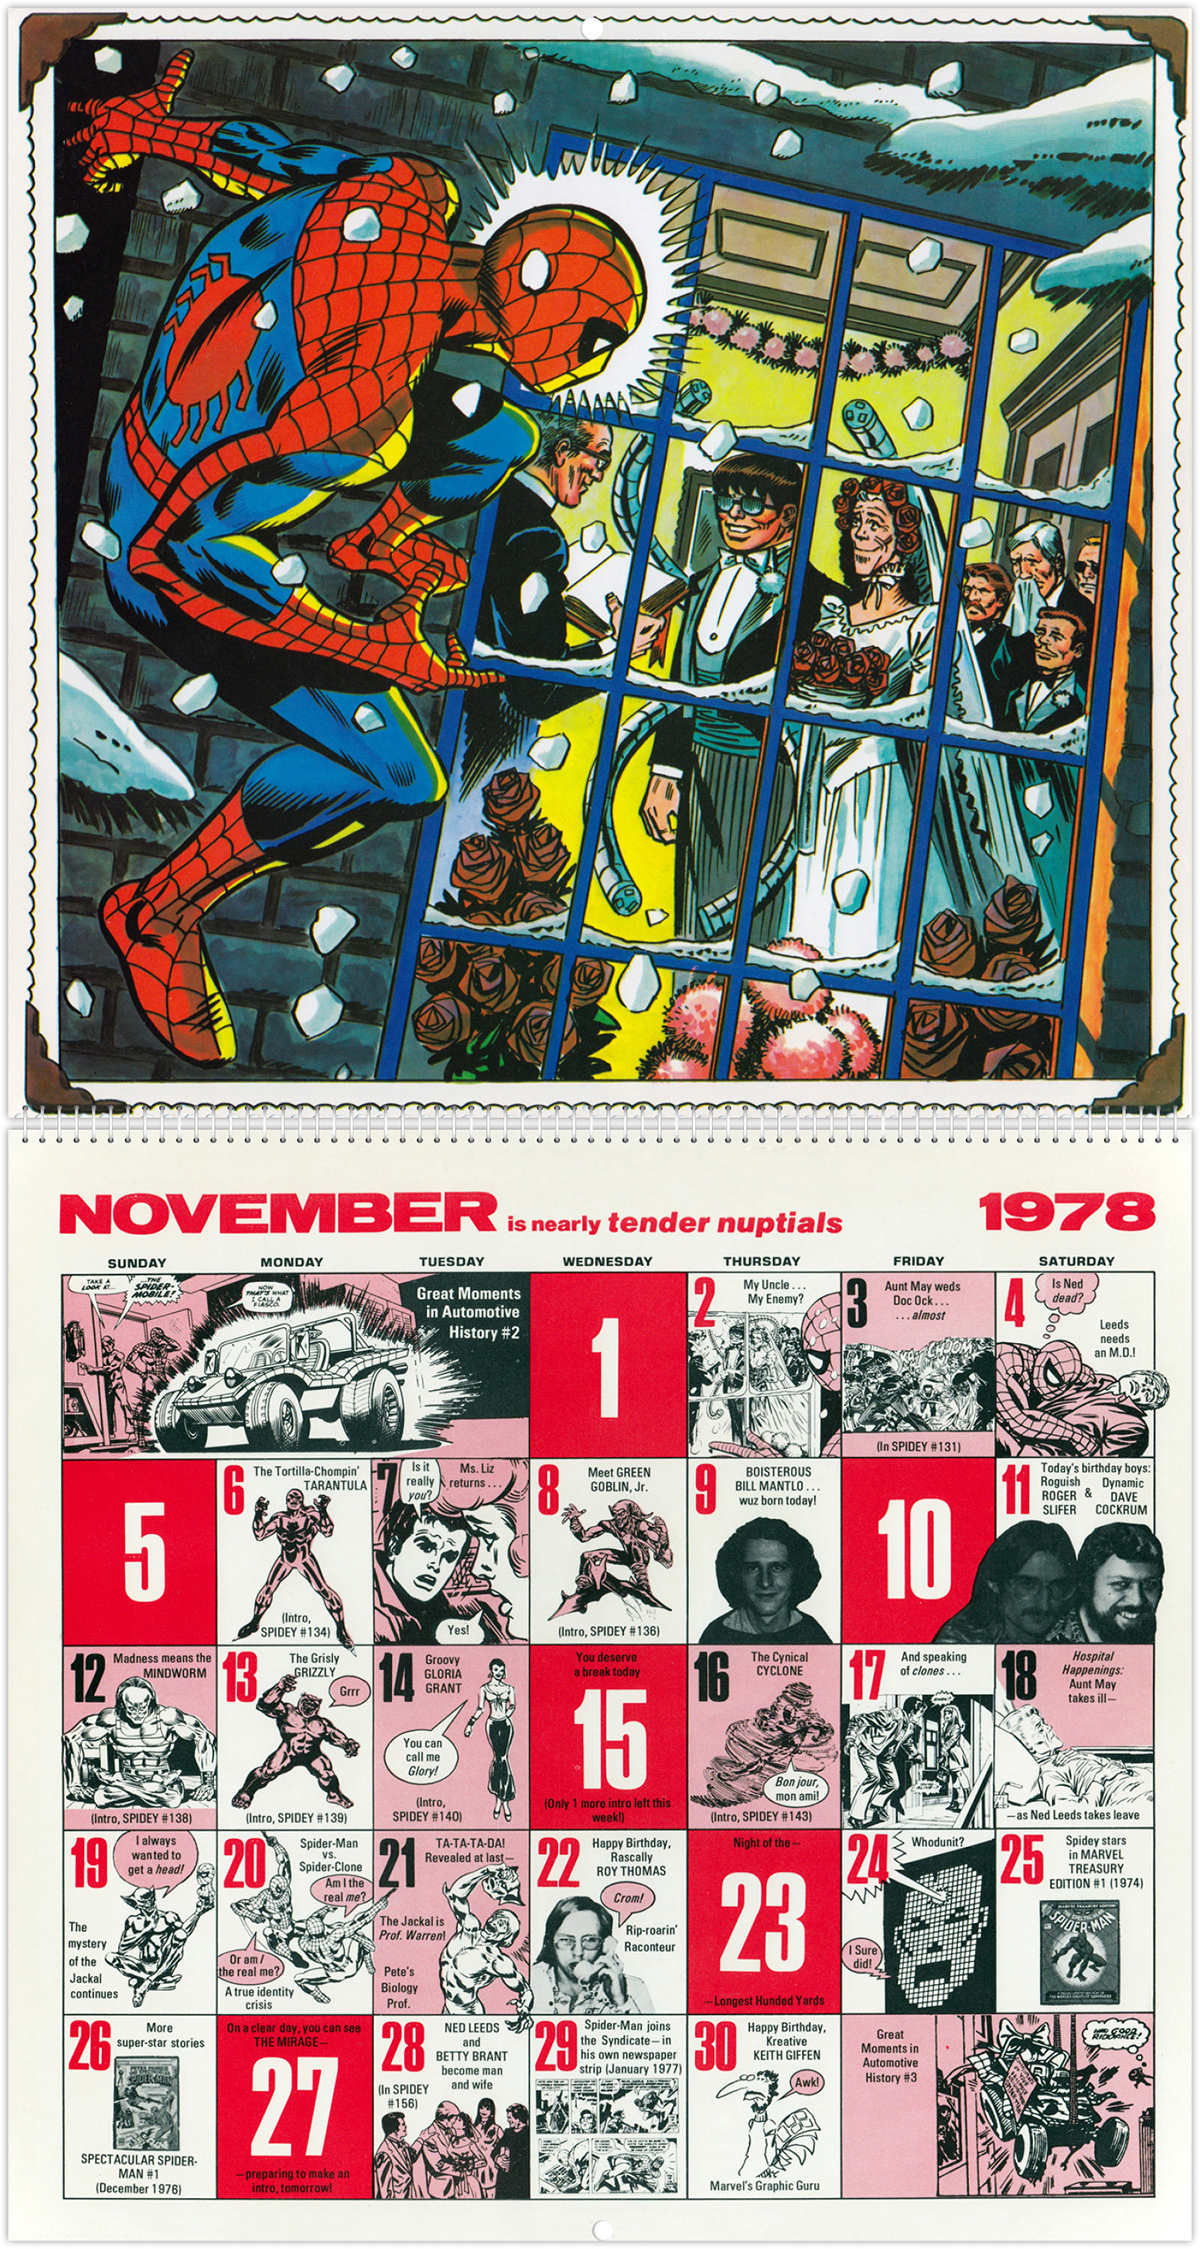 The Amazing Spider Man Mighty Marvel Comics Calendar 1978 Tain T